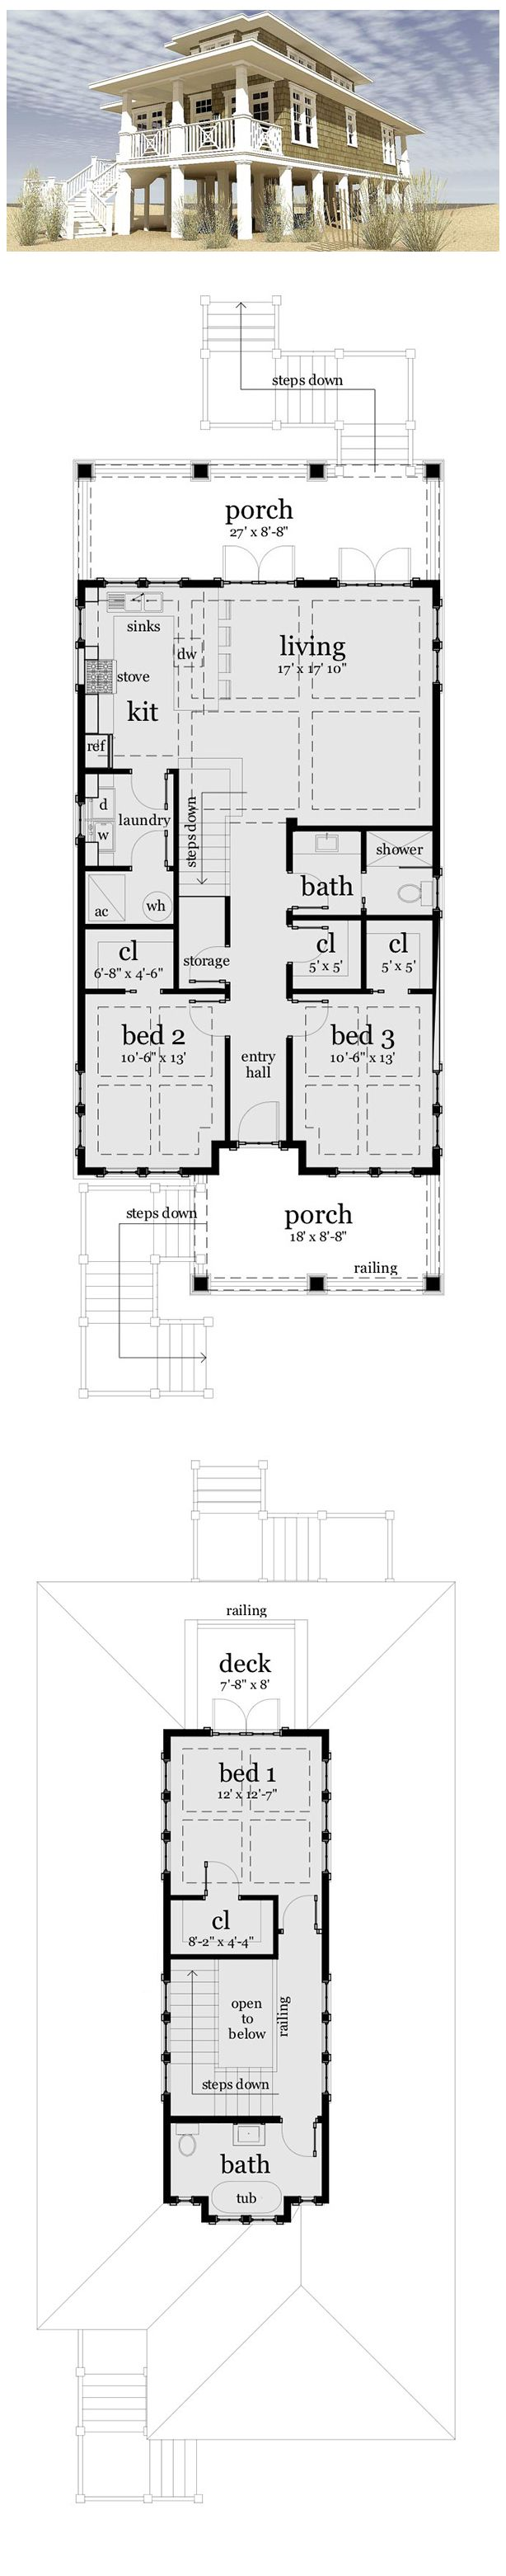 House Plan 70806 | Total living area: 1581 sq ft, 3 bedrooms & 2 bathrooms. #coastal #houseplan #beachhouse